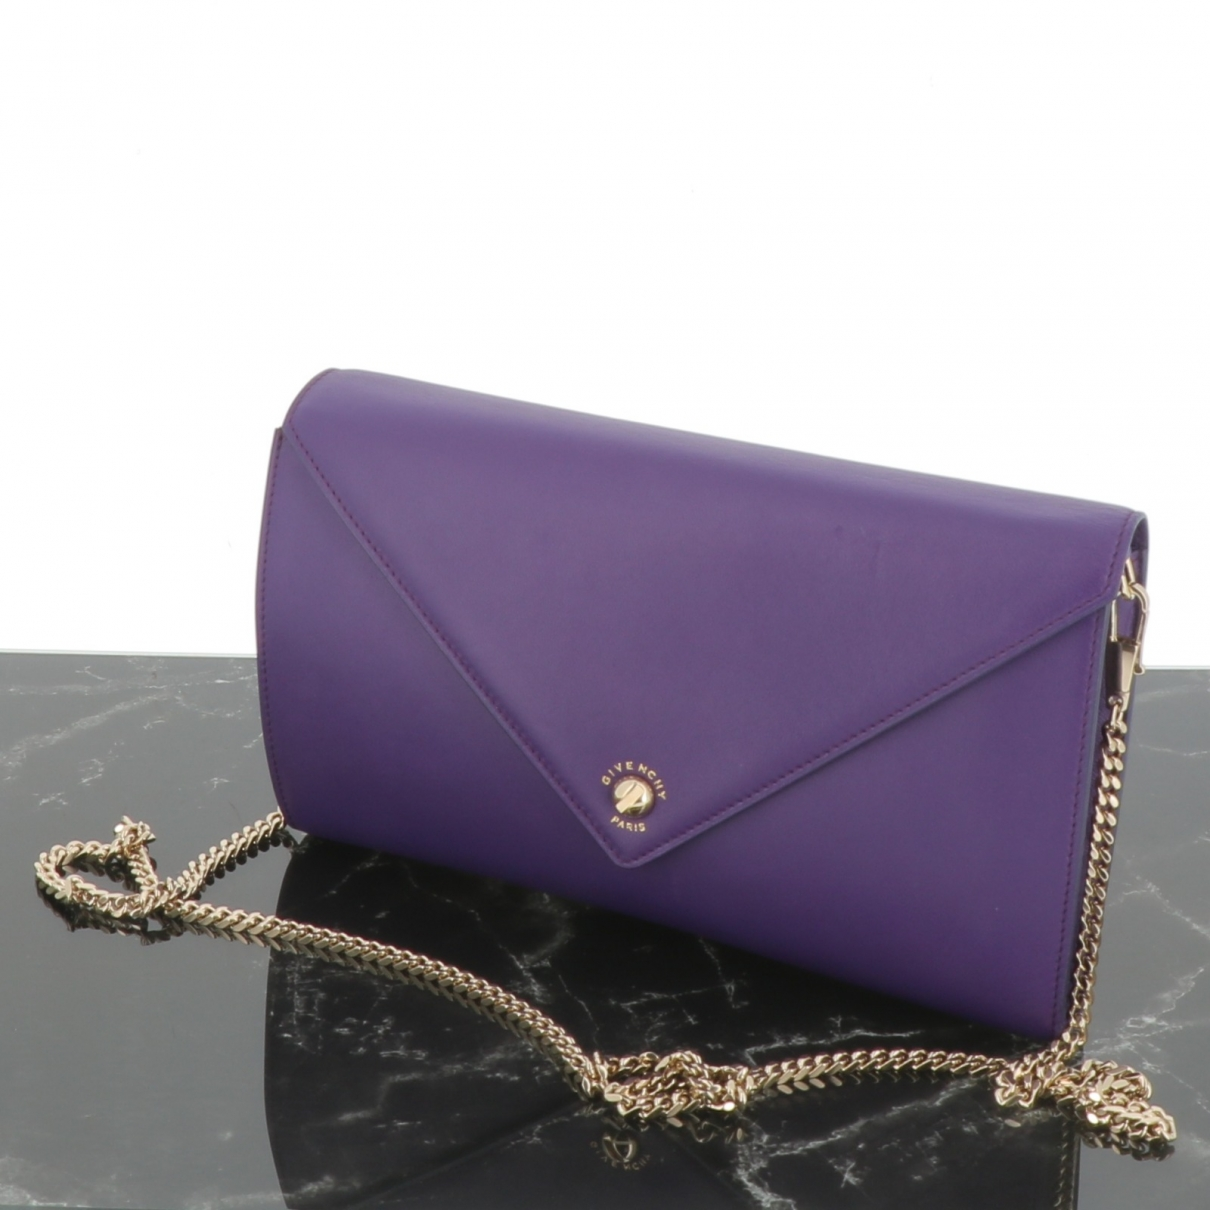 Givenchy \N Purple Leather Clutch bag for Women \N